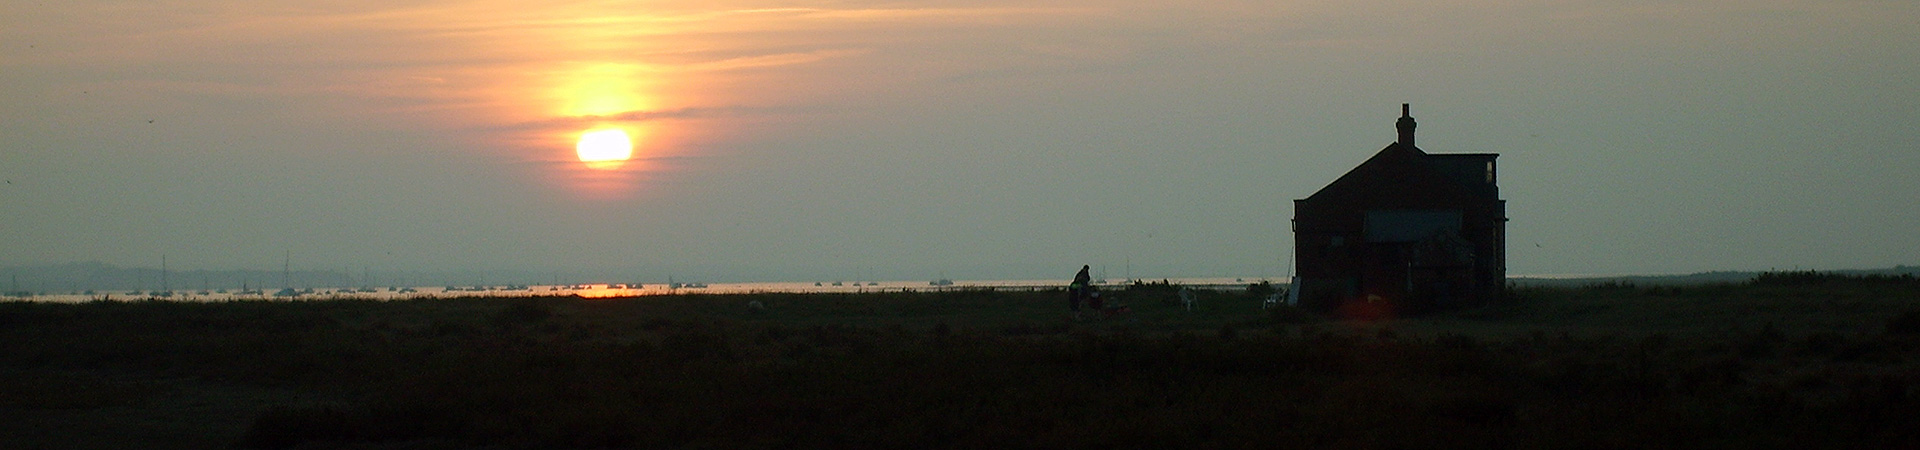 The Watch House at sunset on Blakeney Point